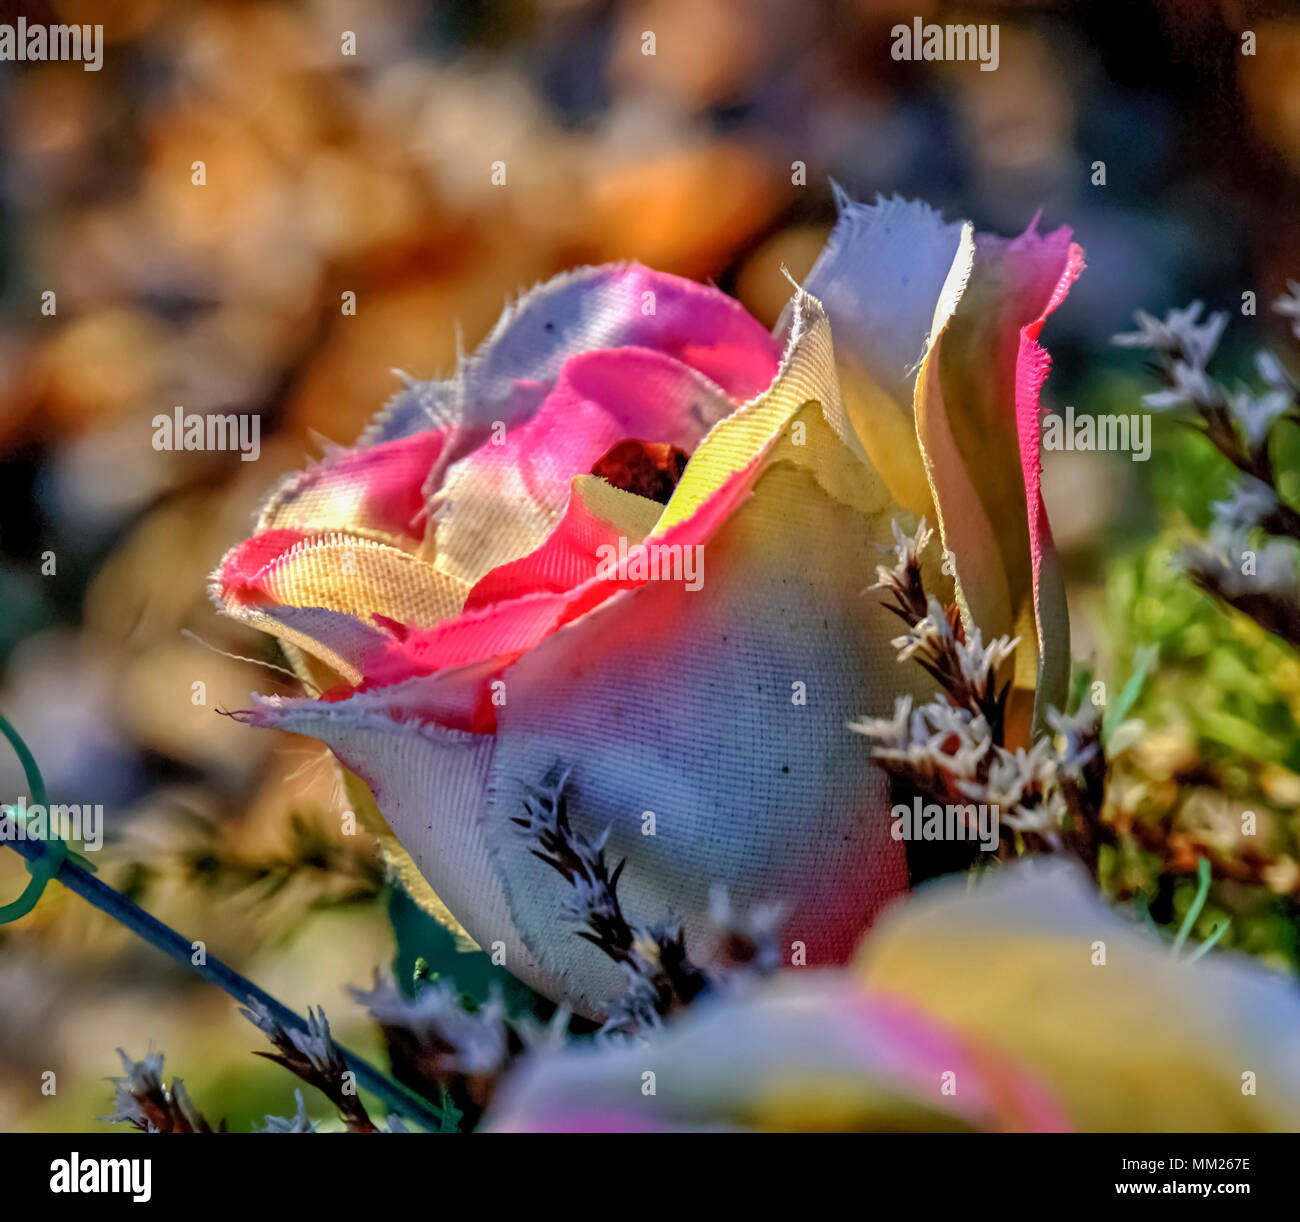 Pink and white garden rose - Stock Image